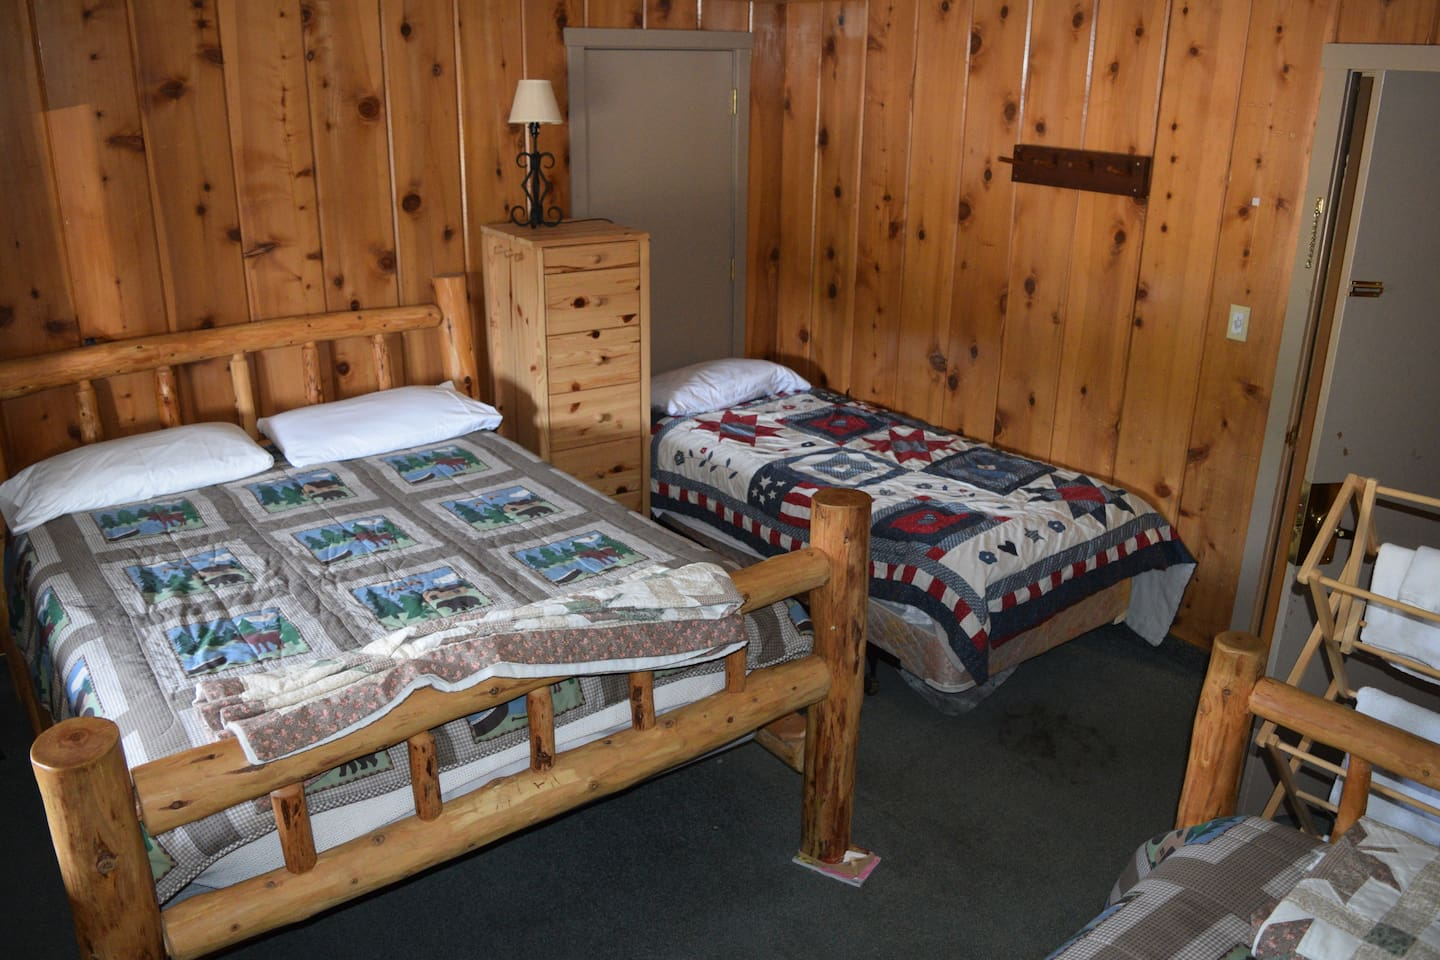 Rustic Lodge Room can be a room with  a queen and twin bed or a room with a queen, two twins or a room with a queen, twin and bunk bed.  Shared bathroom down the hallway, separate for men and women.  Access to a fully equipped guest kitchen.  You will be assigned a room for the number of people in your party.  Please specific at the time of booking...ei 2 beds for 2 adults or 3 beds for 3 adults or 2 adults and 2 kids or if your party is 2, 3, 4 or 5 people.